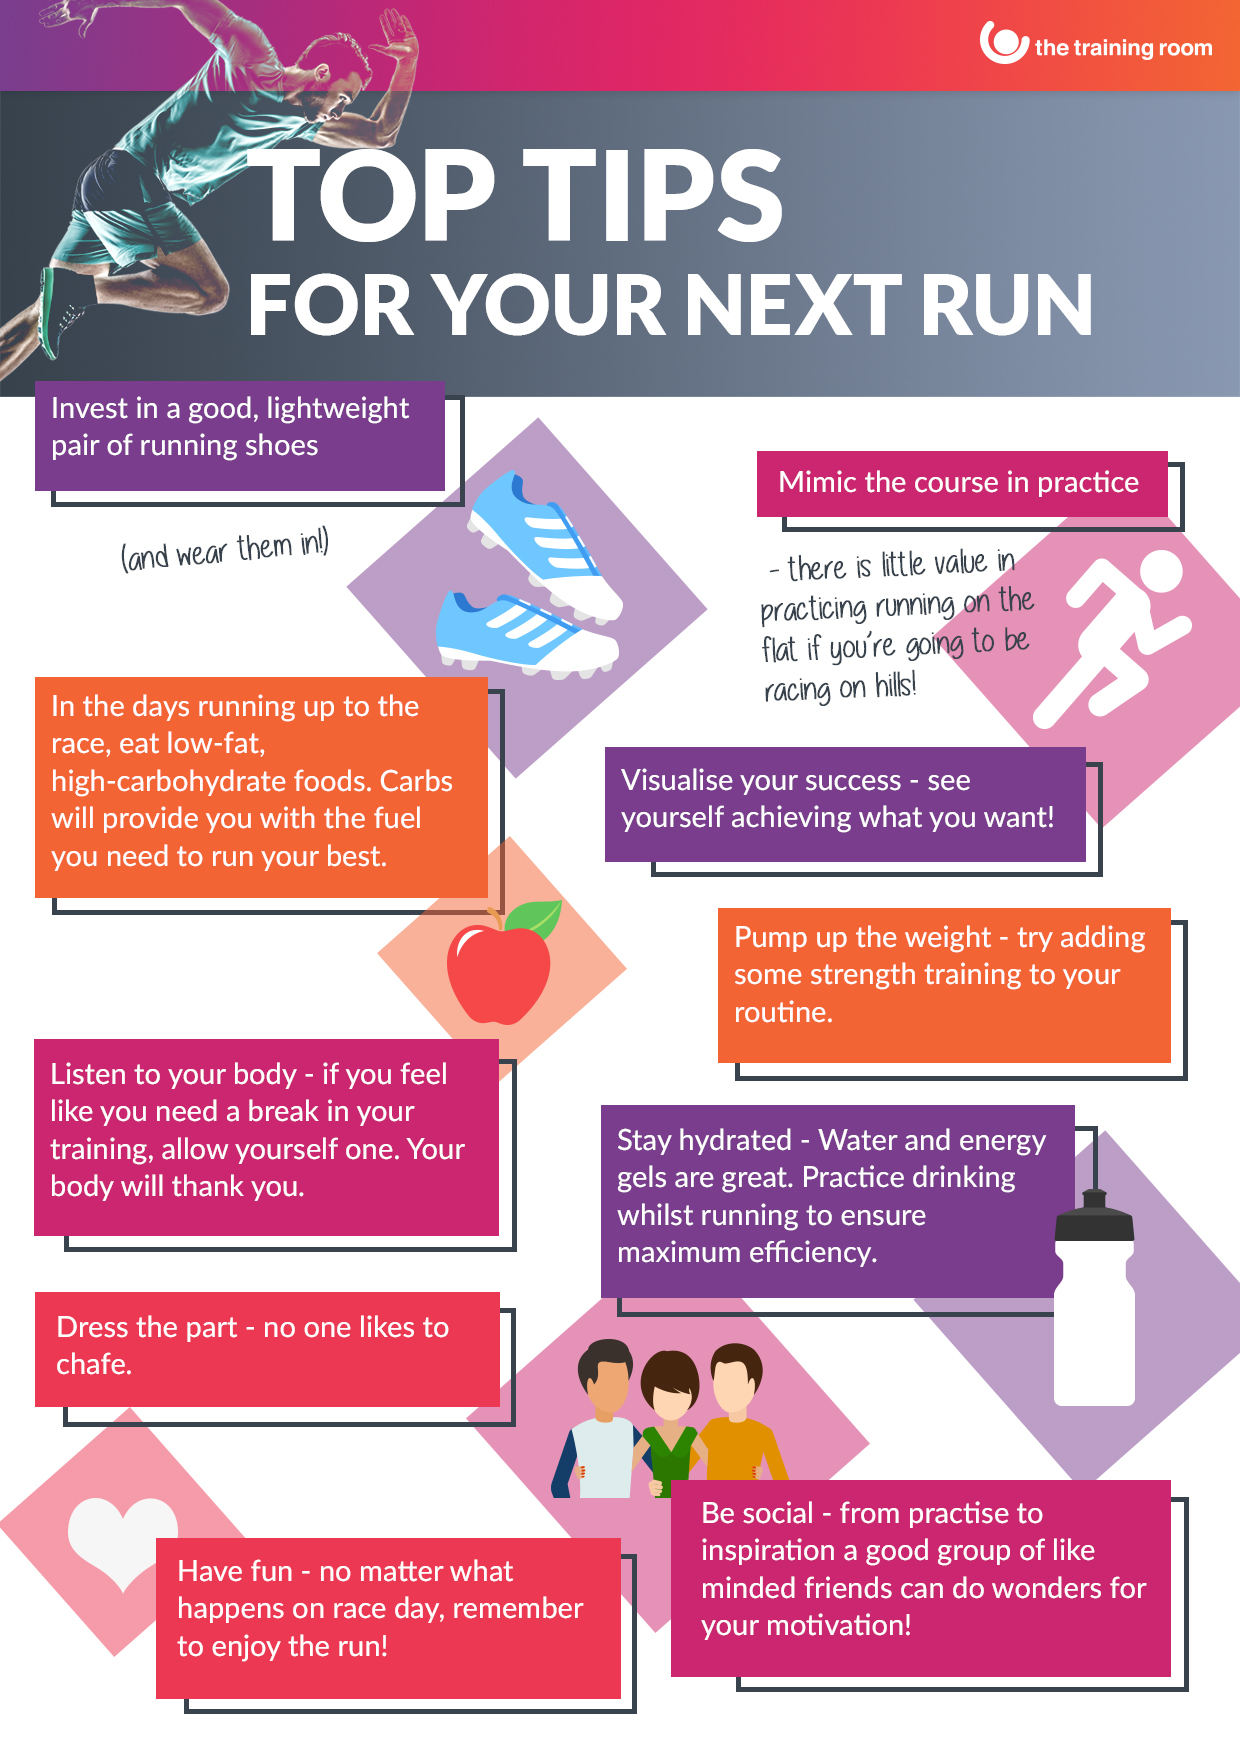 top-tips-next-run-1